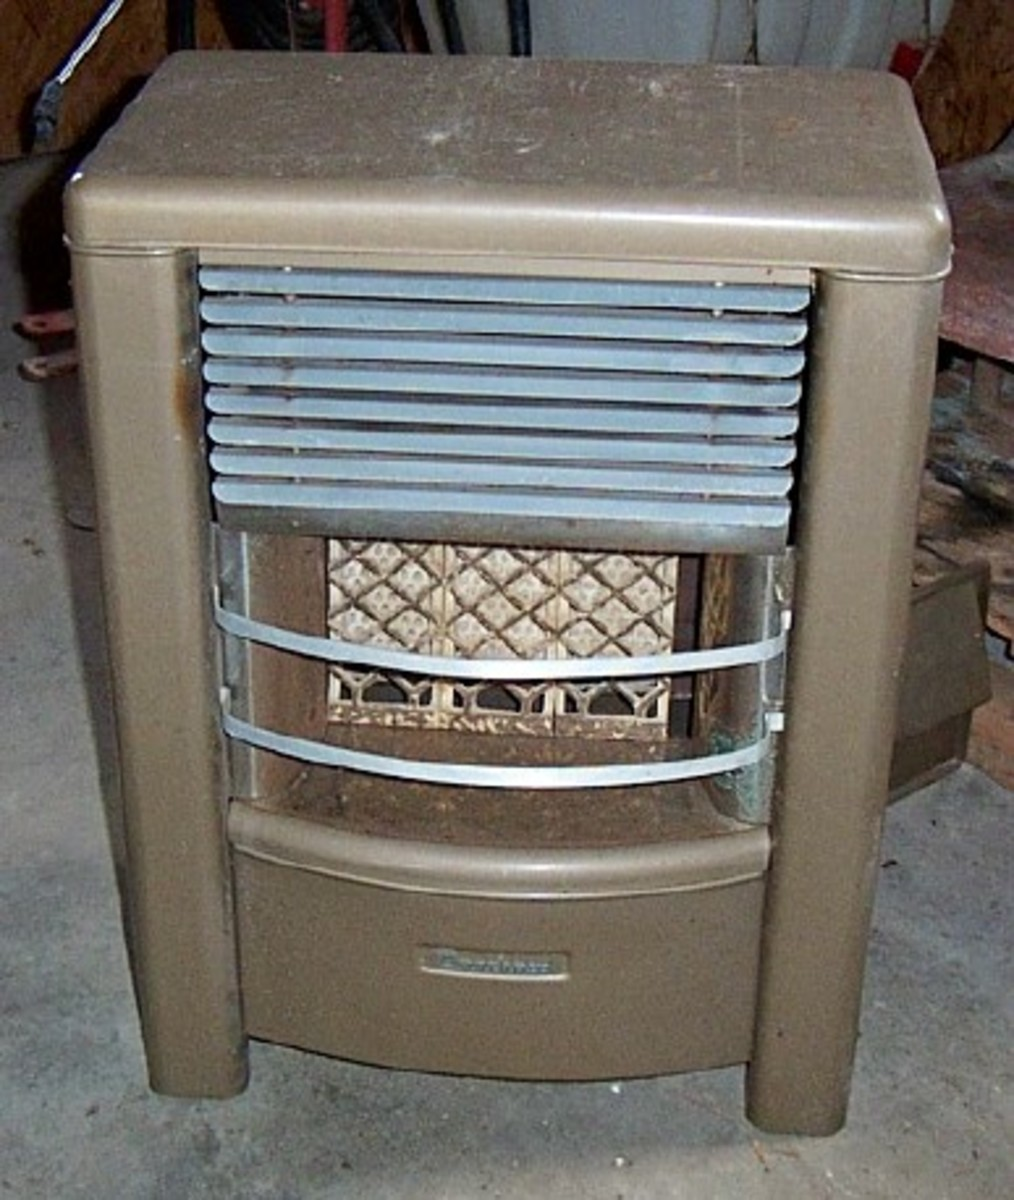 This Dearborn heater is almost identical to the one at my mother's house that I grew up around.